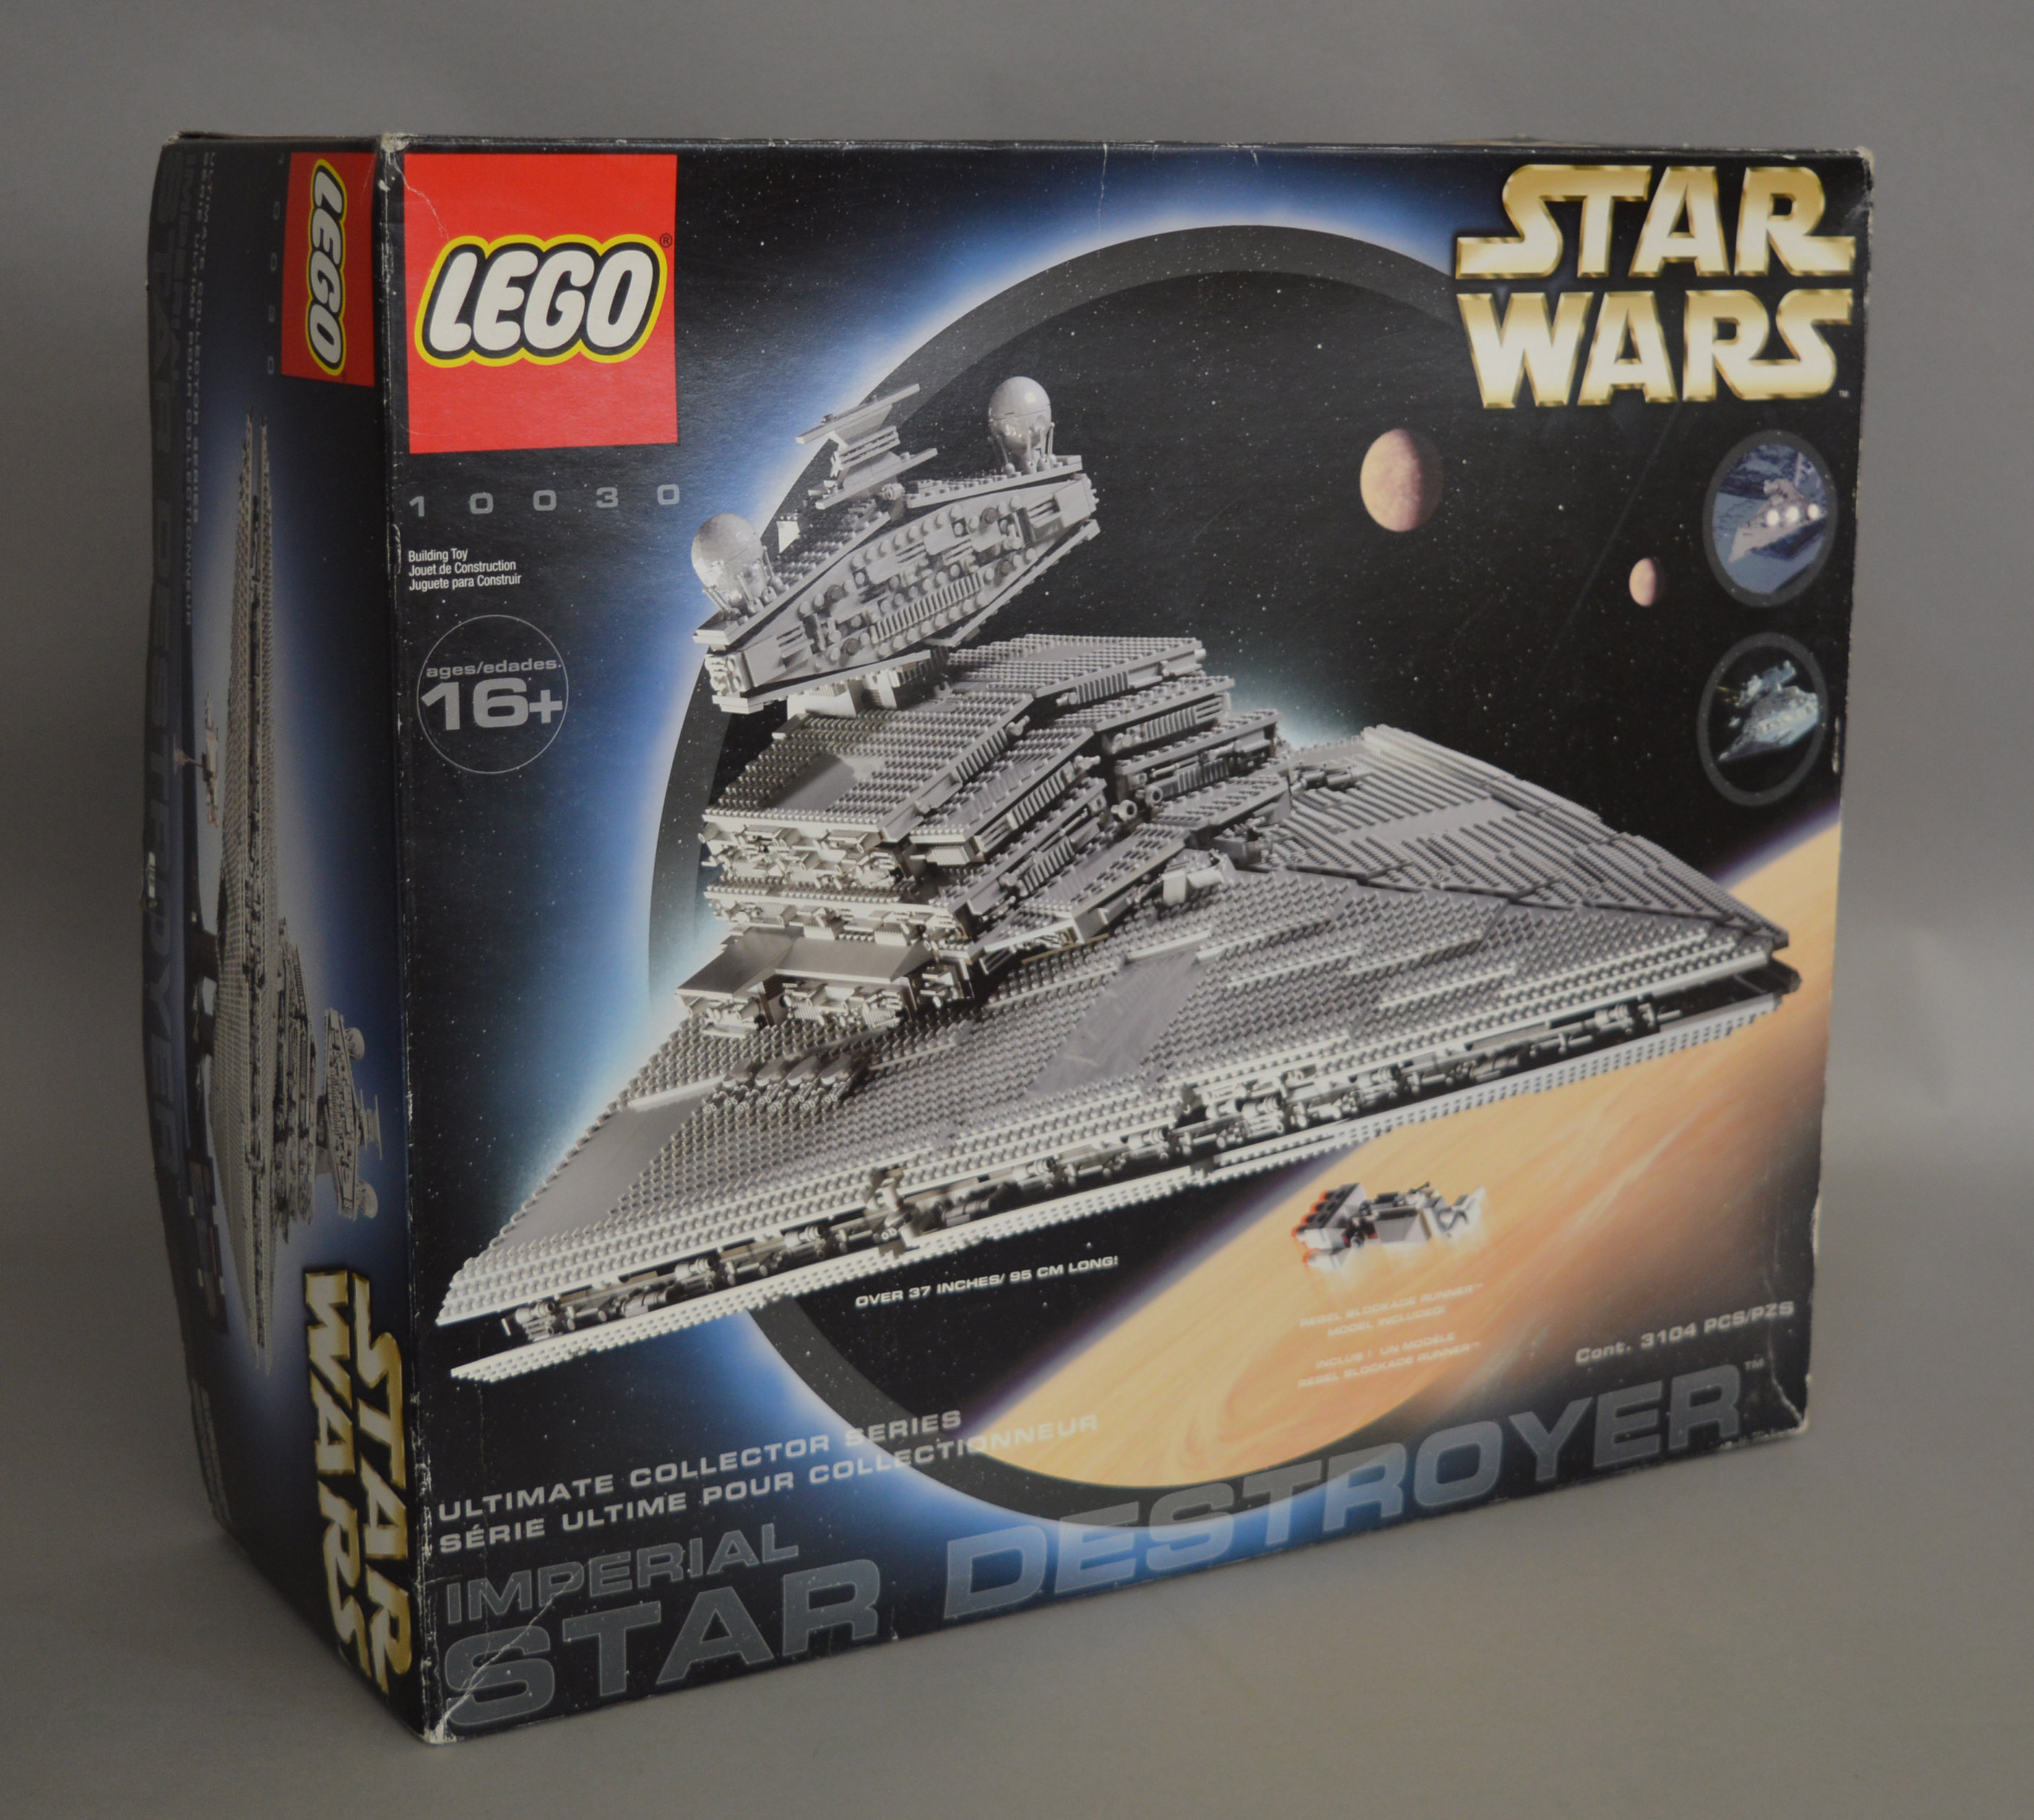 Lot 14 - Lego Star Wars 10030 'Imperial Star Destroyer', in generally G box with some scuffing and creasing.